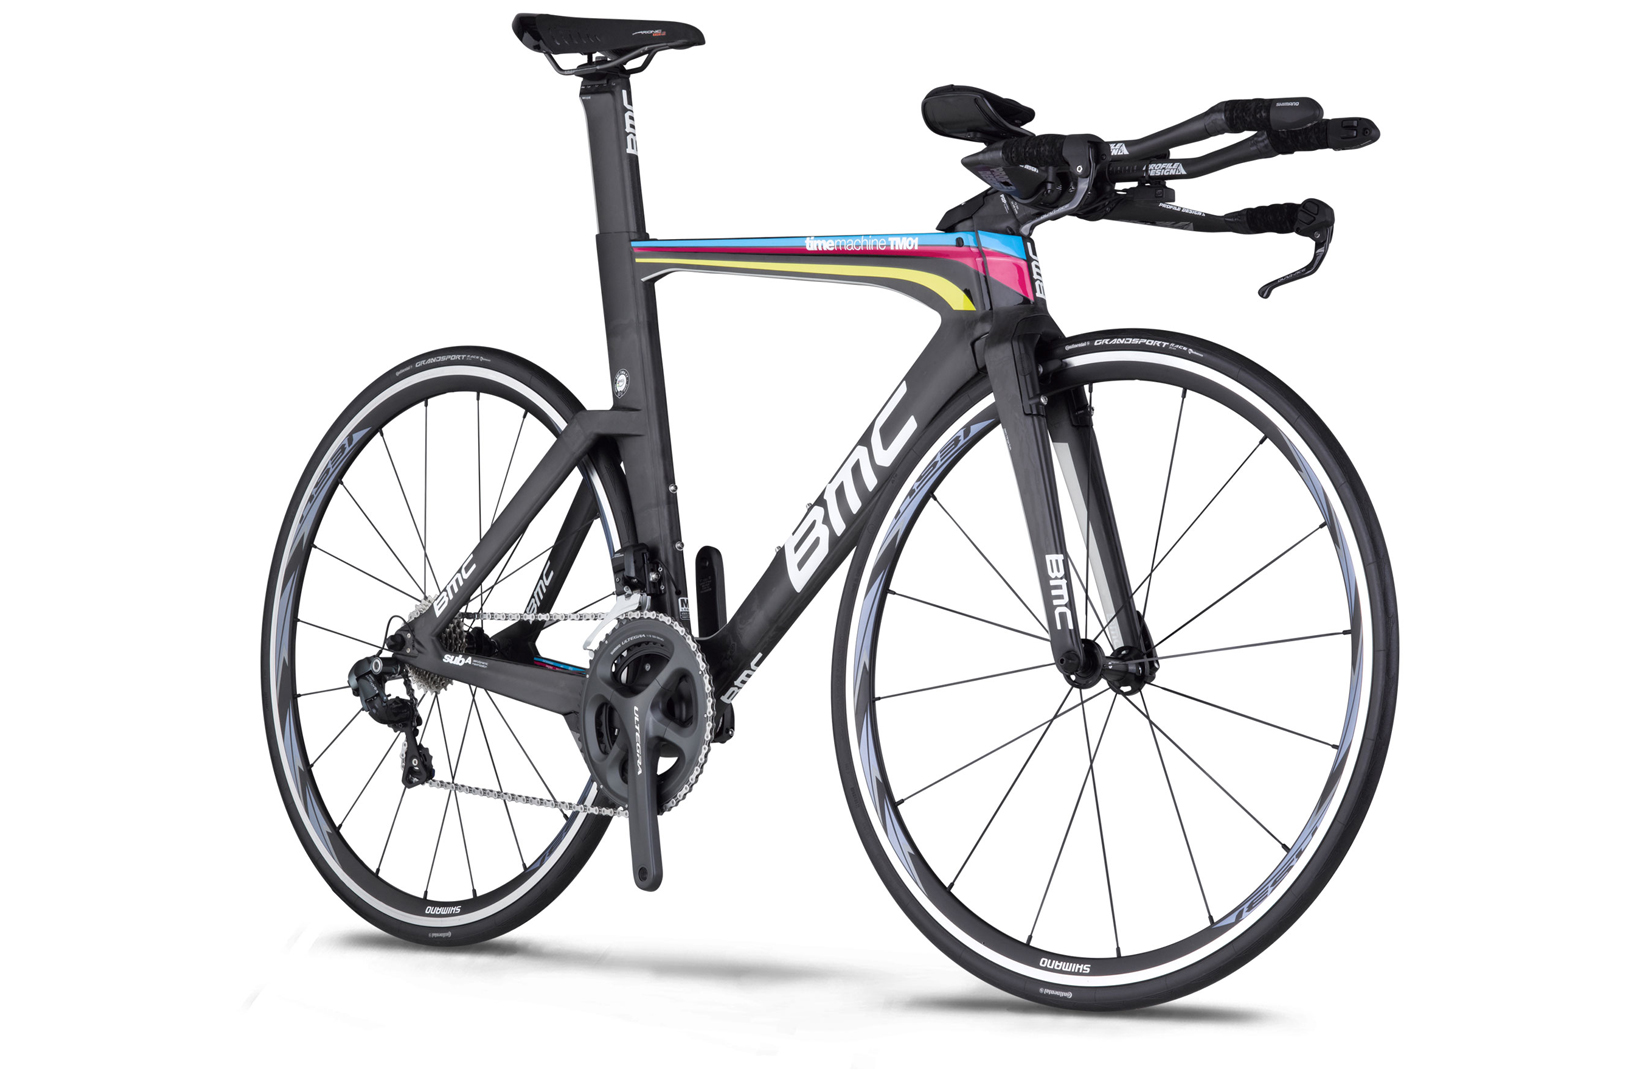 Bmc Timemachine Tm01 Ultegra Di2 2014 Review The Bike List